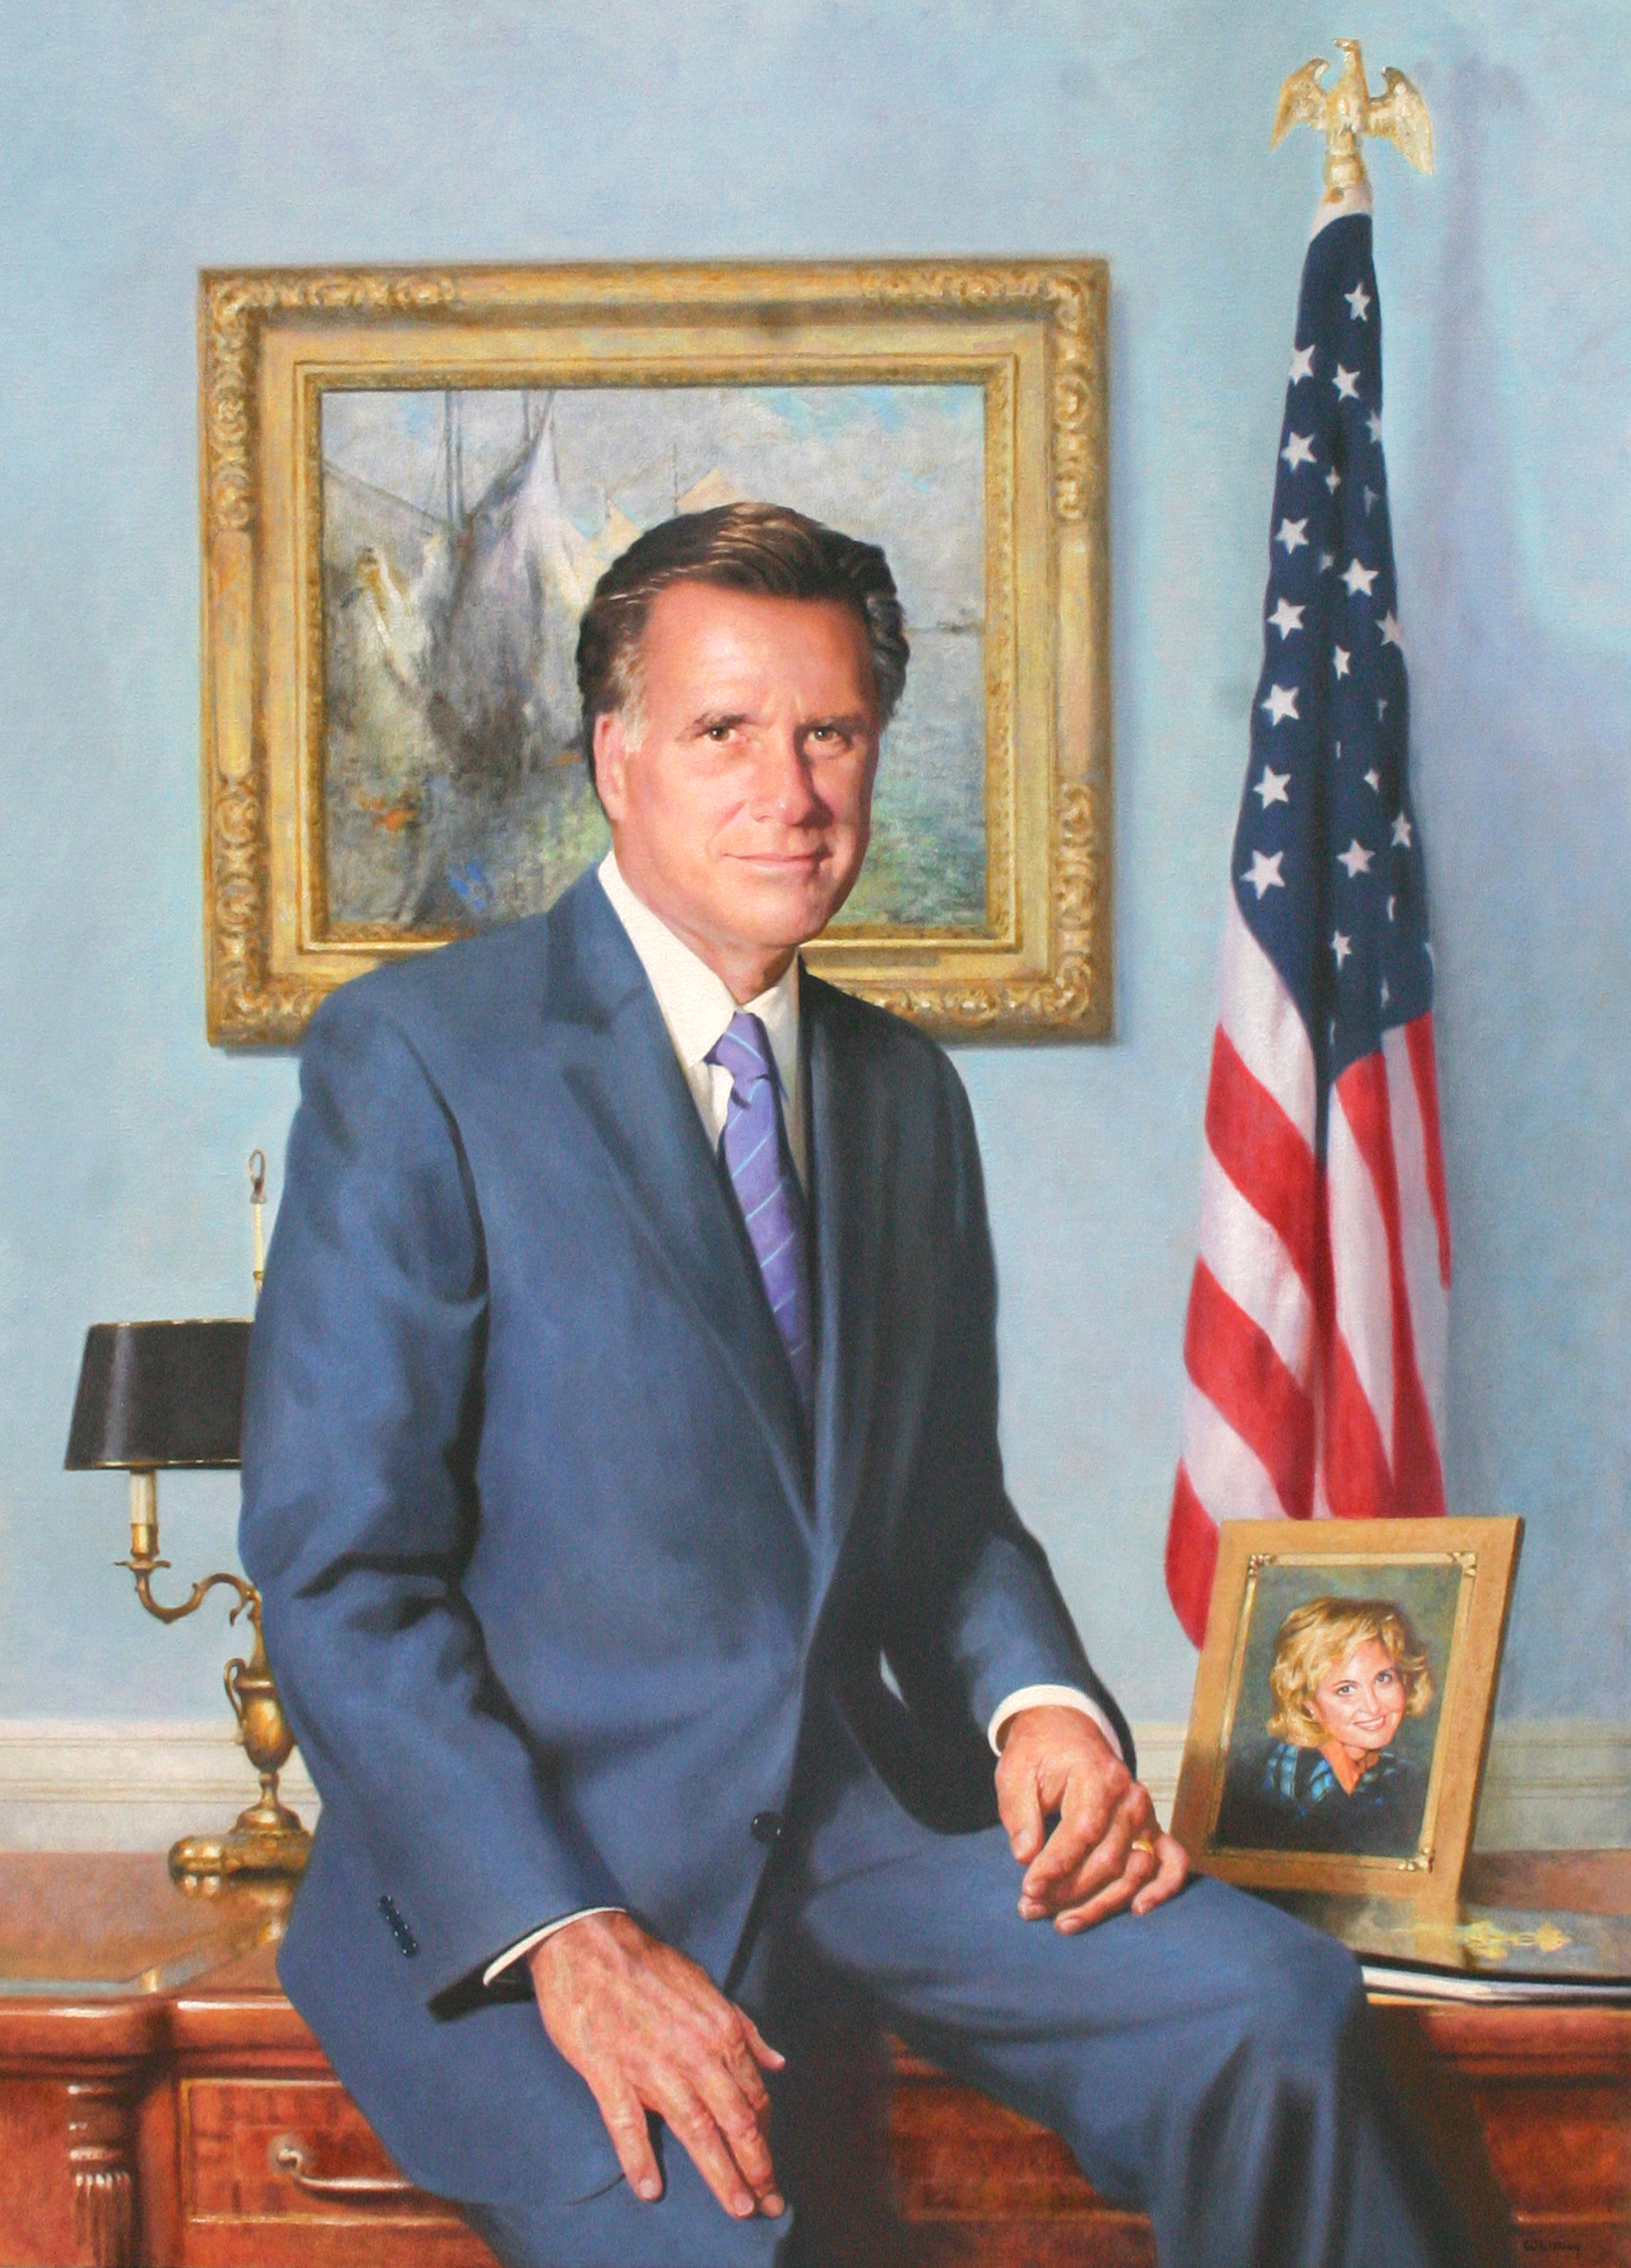 Mitt Romney resting on a wooden desk, flanked by an American flag, a picture of his wife, a lamp, and a painting of mountains